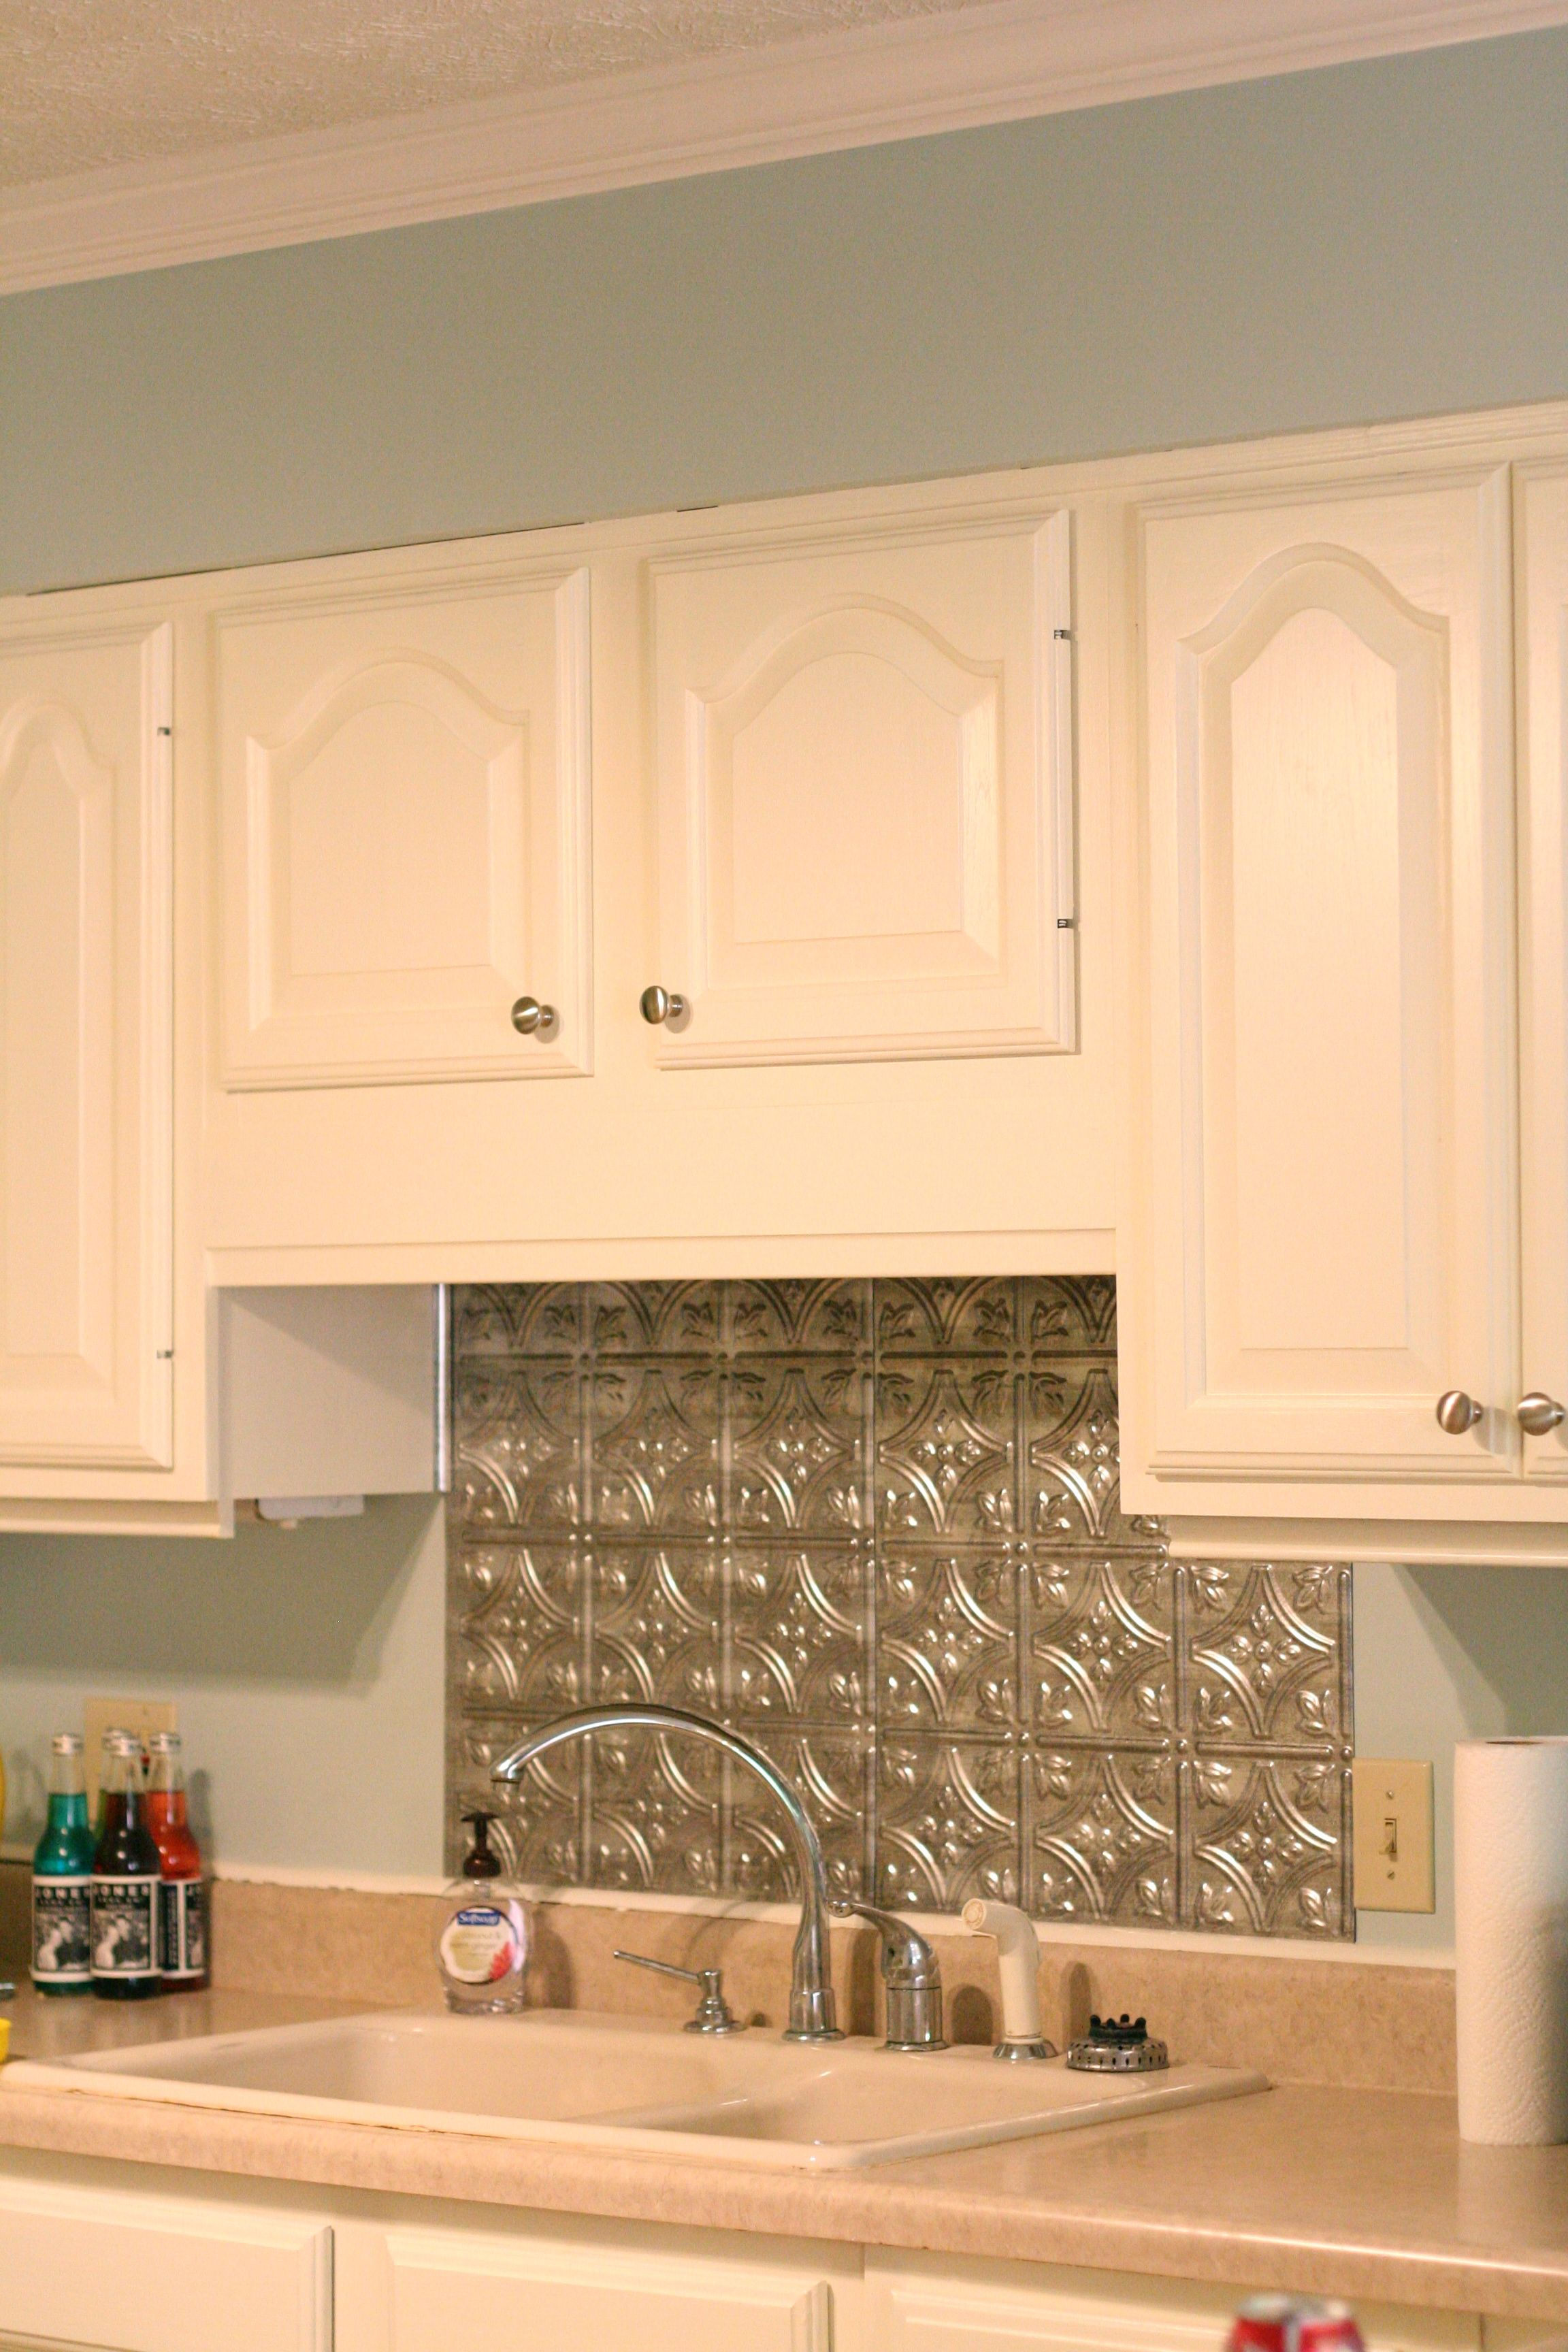 our new faux tin backsplash and newly painted cabinets and walls ...